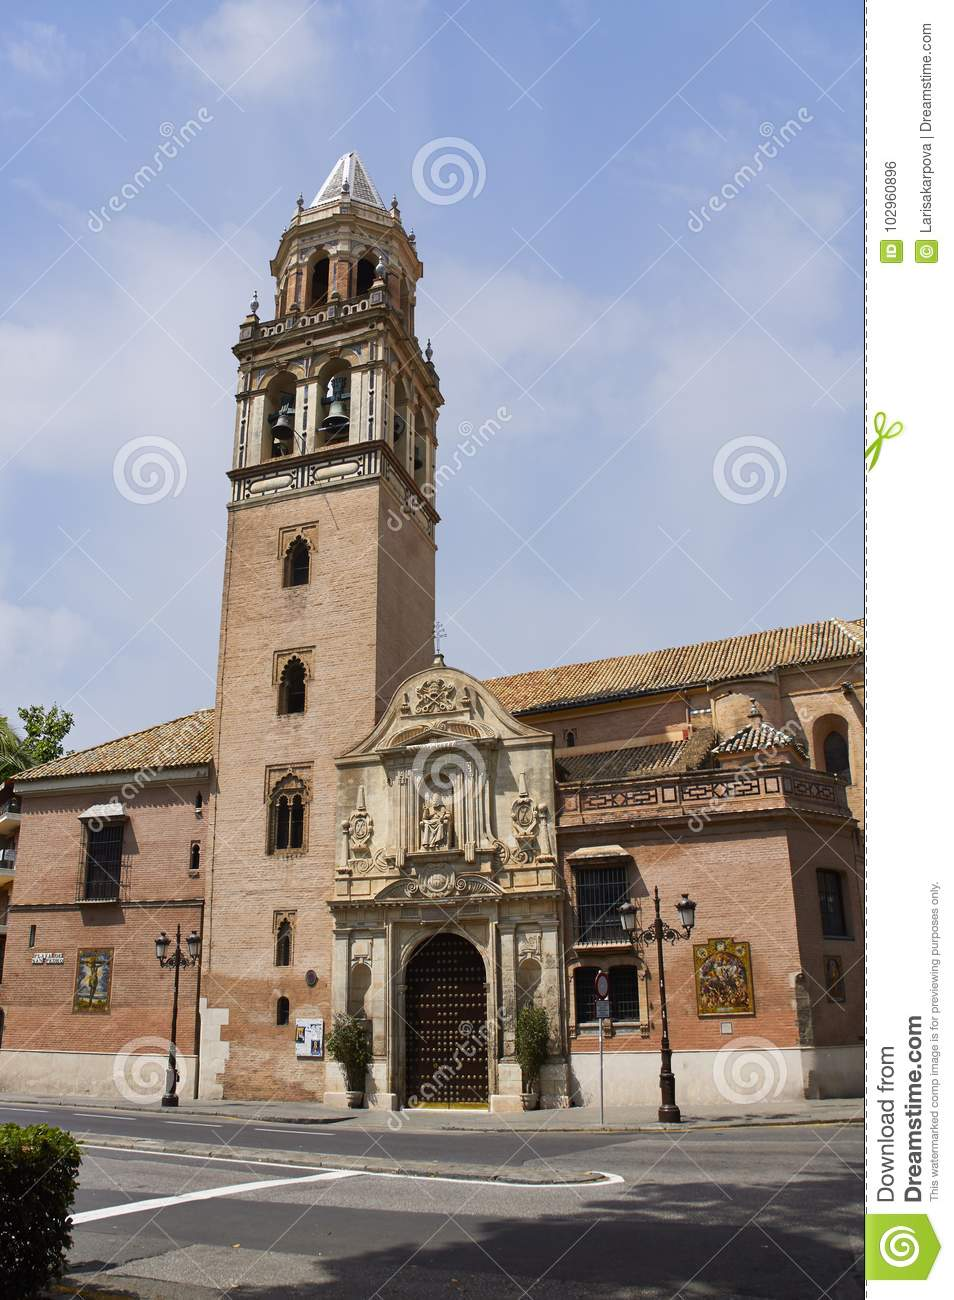 Historic buildings and monuments of Seville, Spain. Spanish architectural styles of Gothic. Santa Catalina